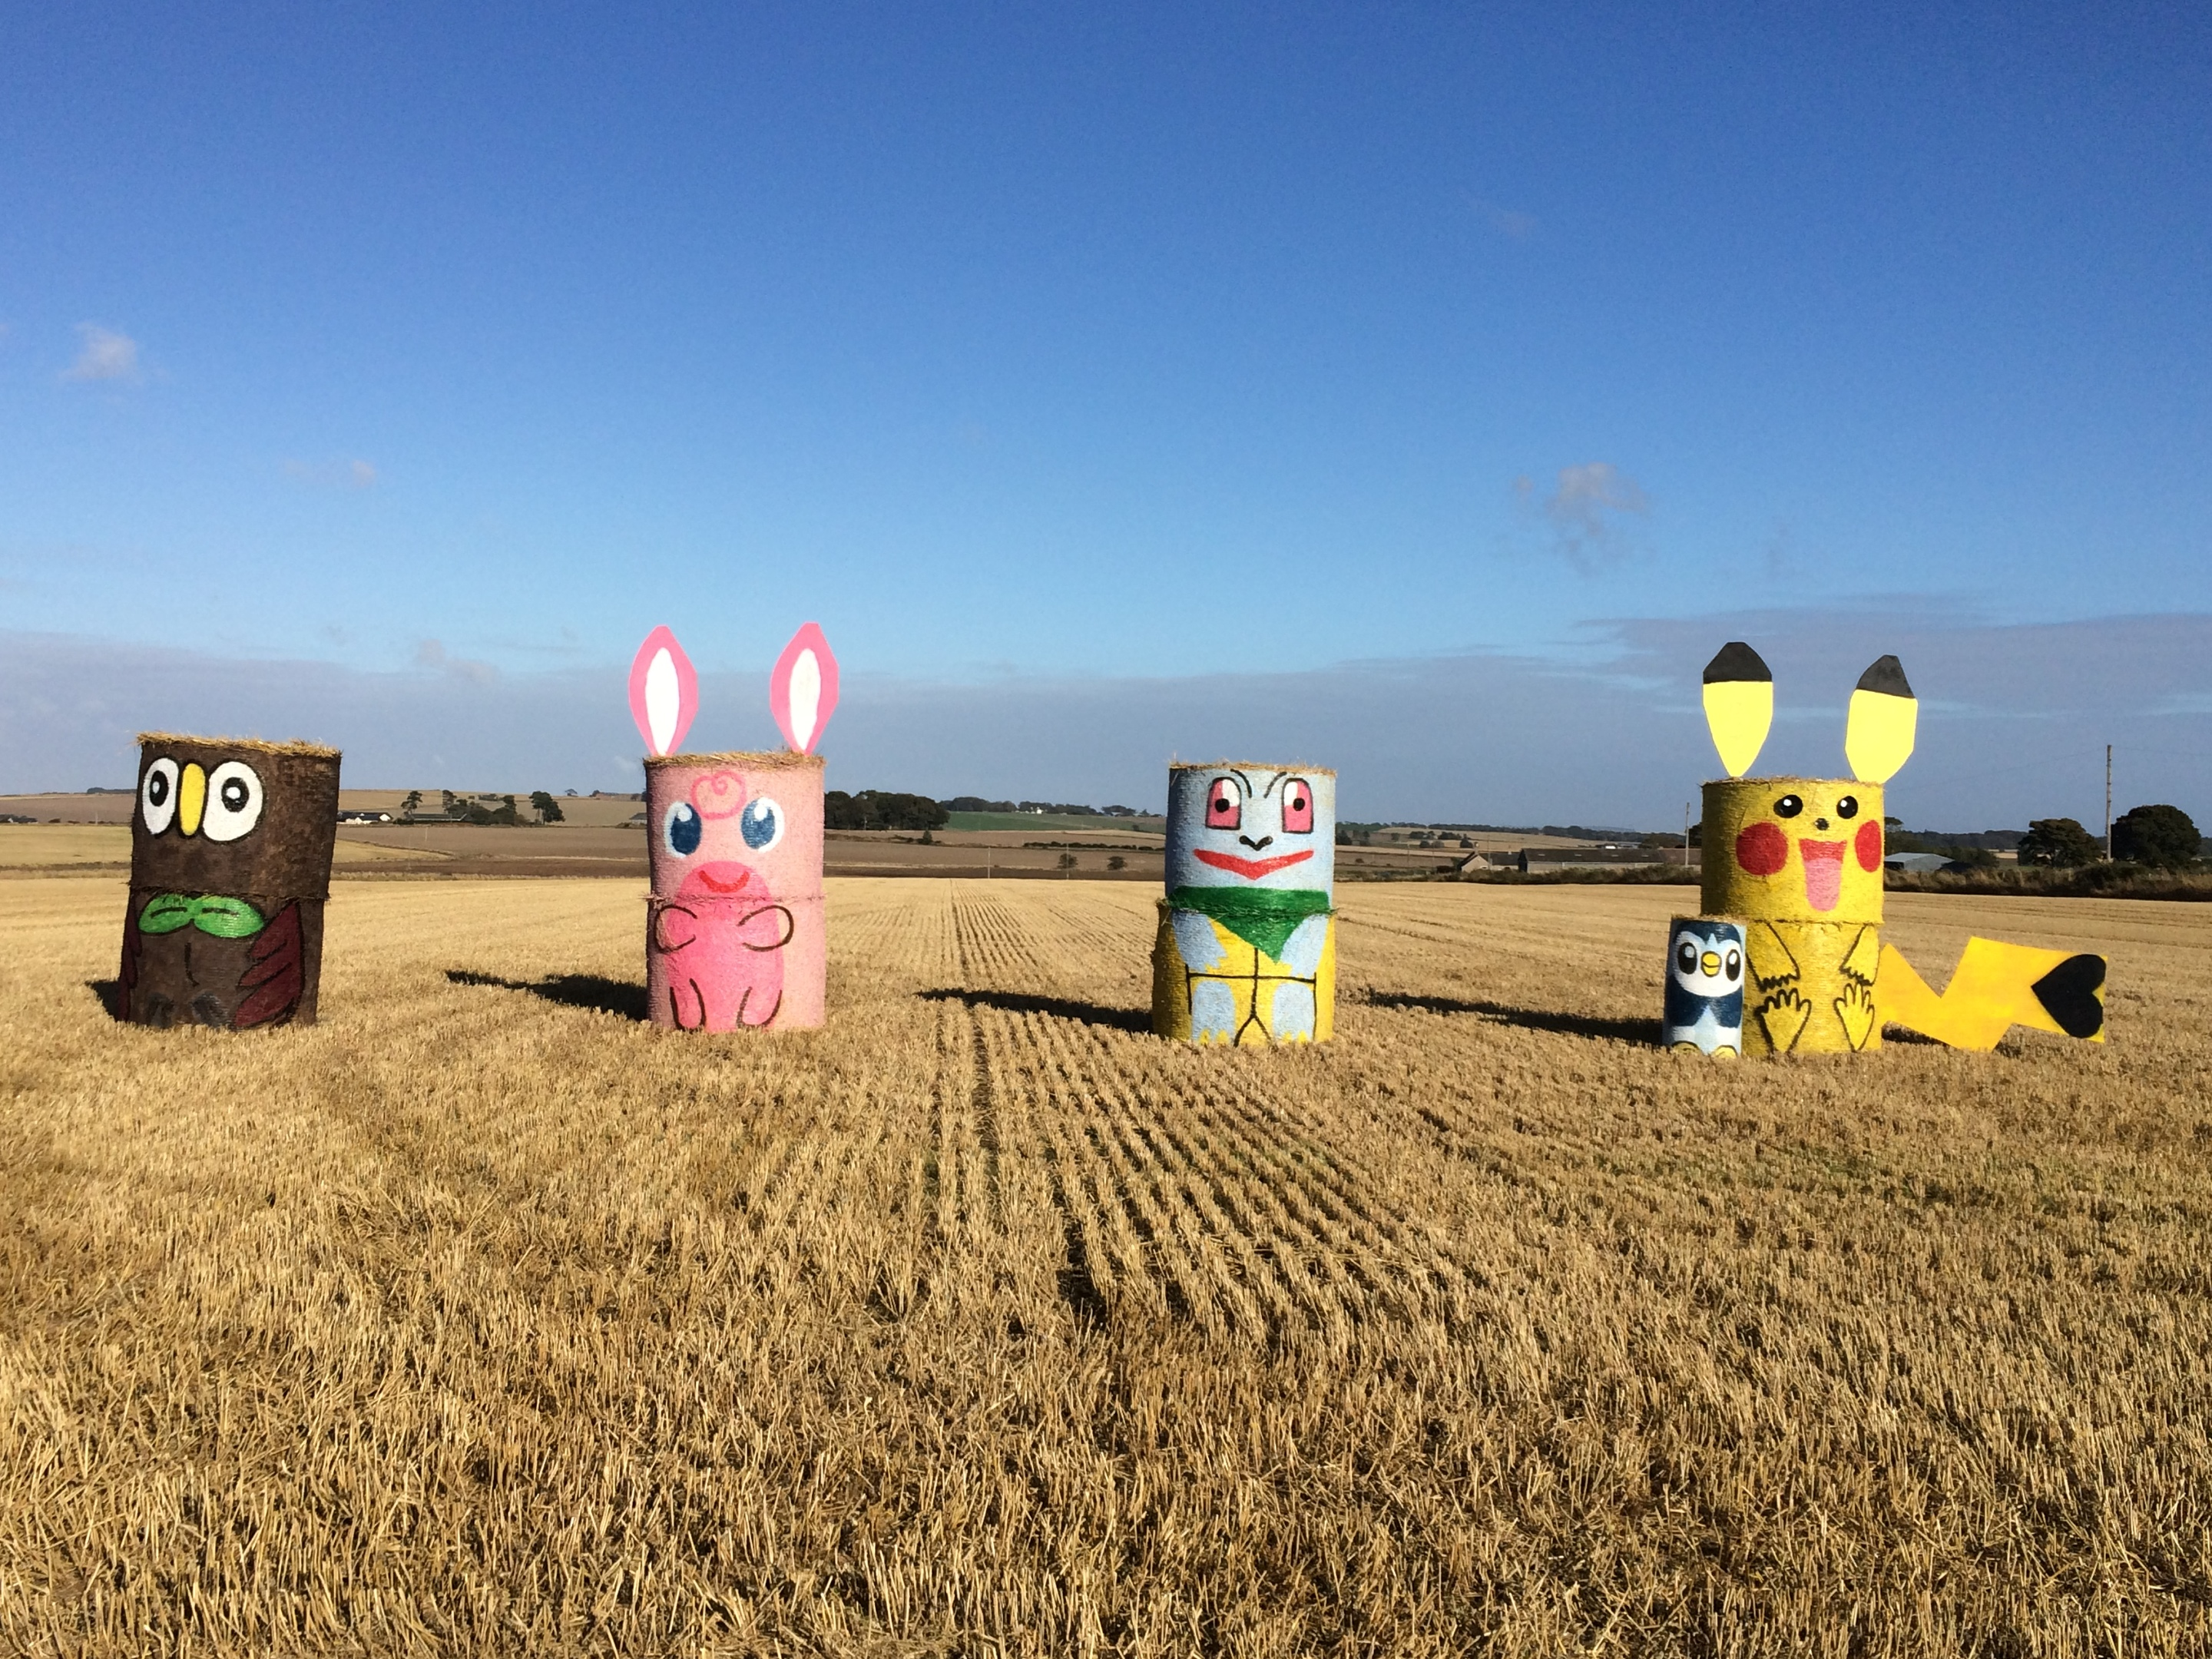 The colourful characters at East Skichen Farm in Angus